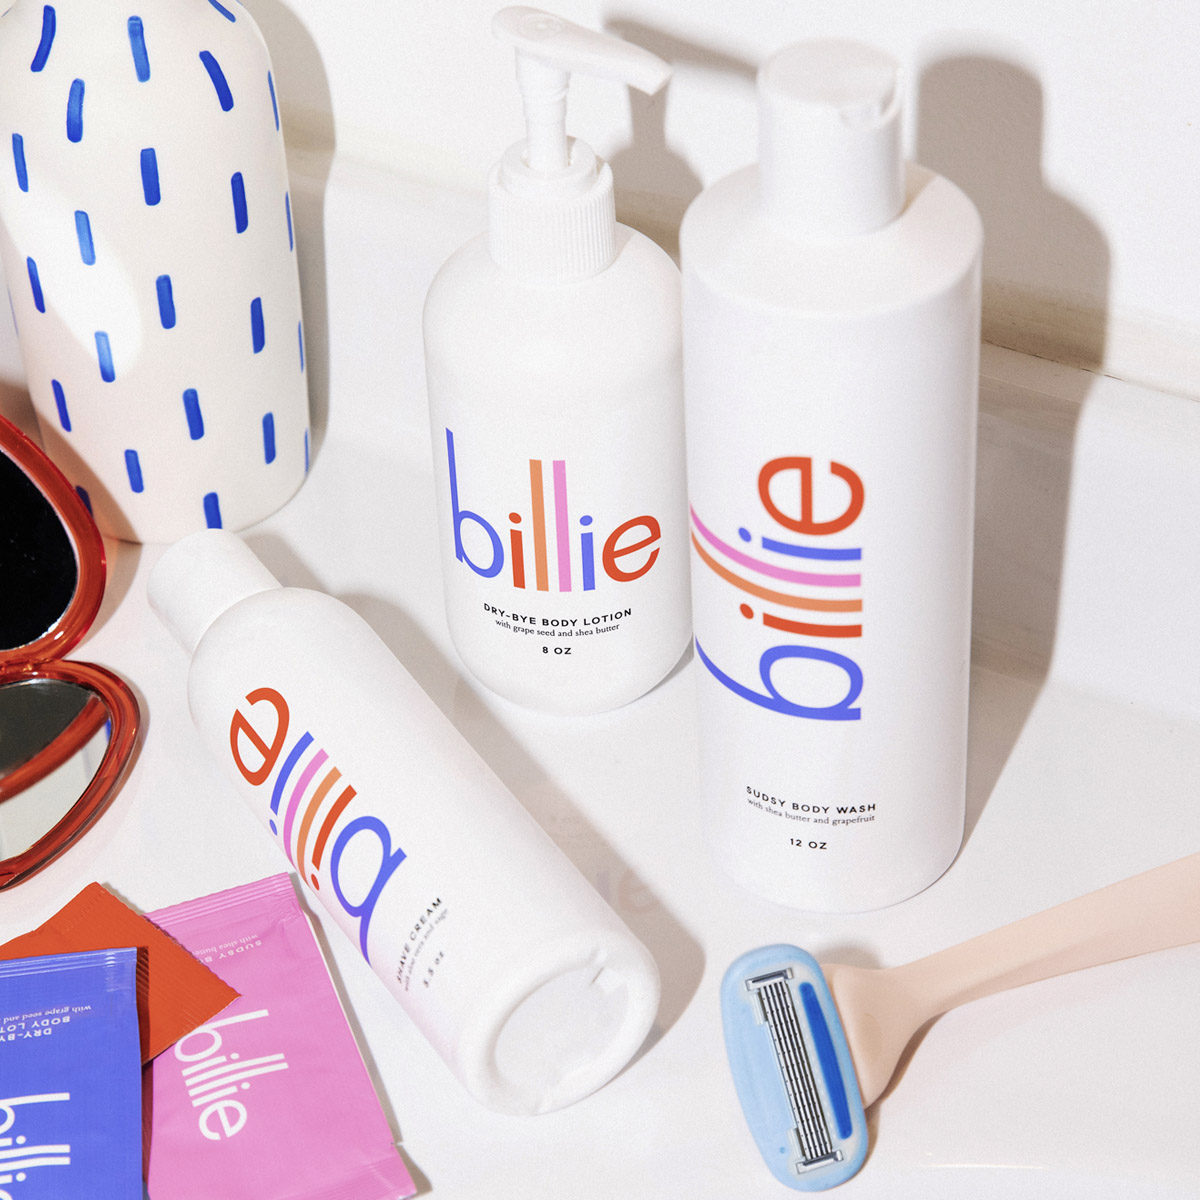 Billie products.